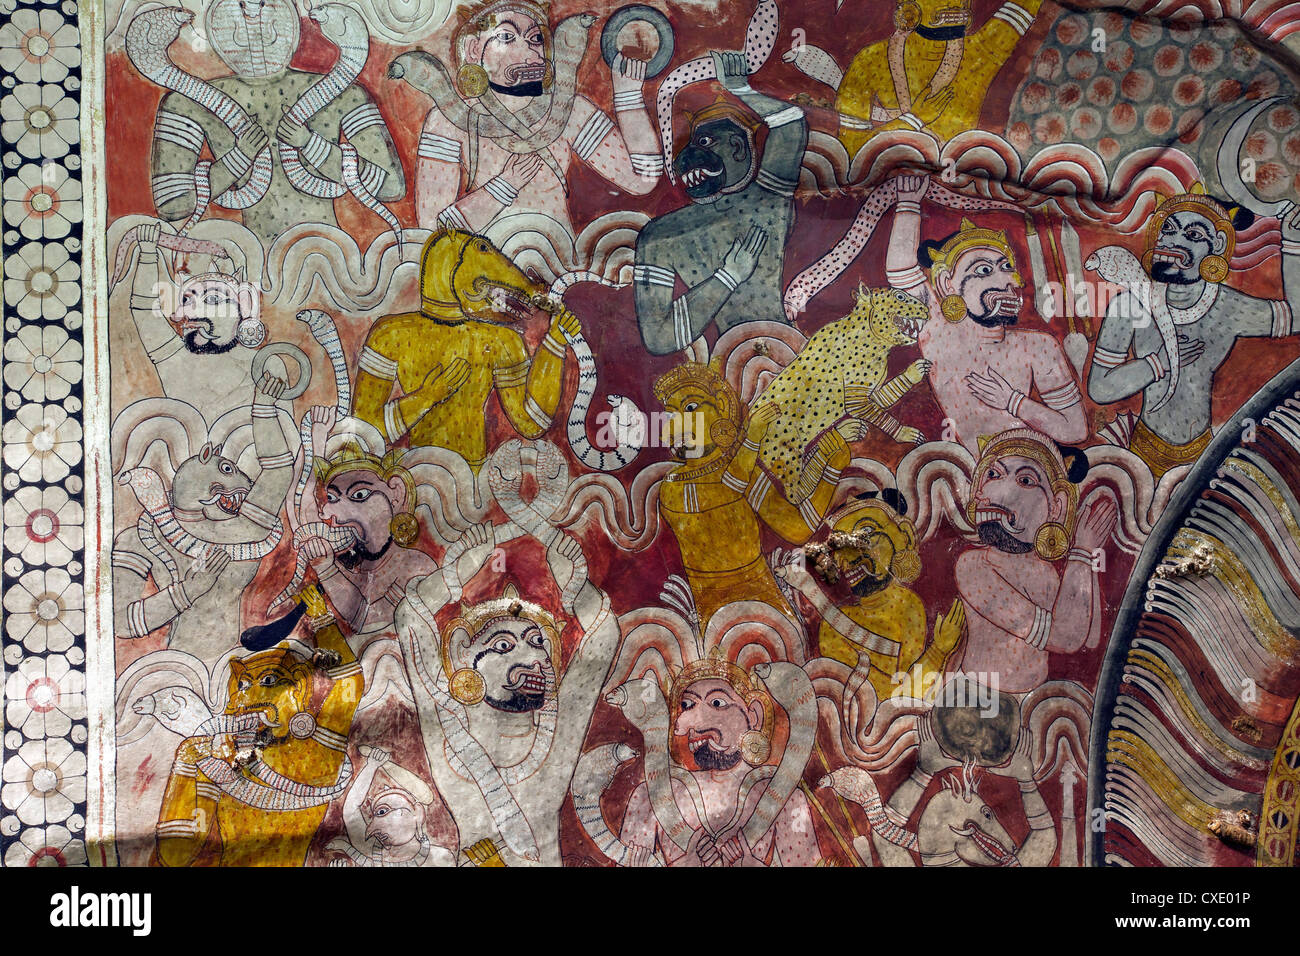 Roof murals, Dambulla Cave Temple, UNESCO, World Heritage Site, Sri Lanka, Asia - Stock Image